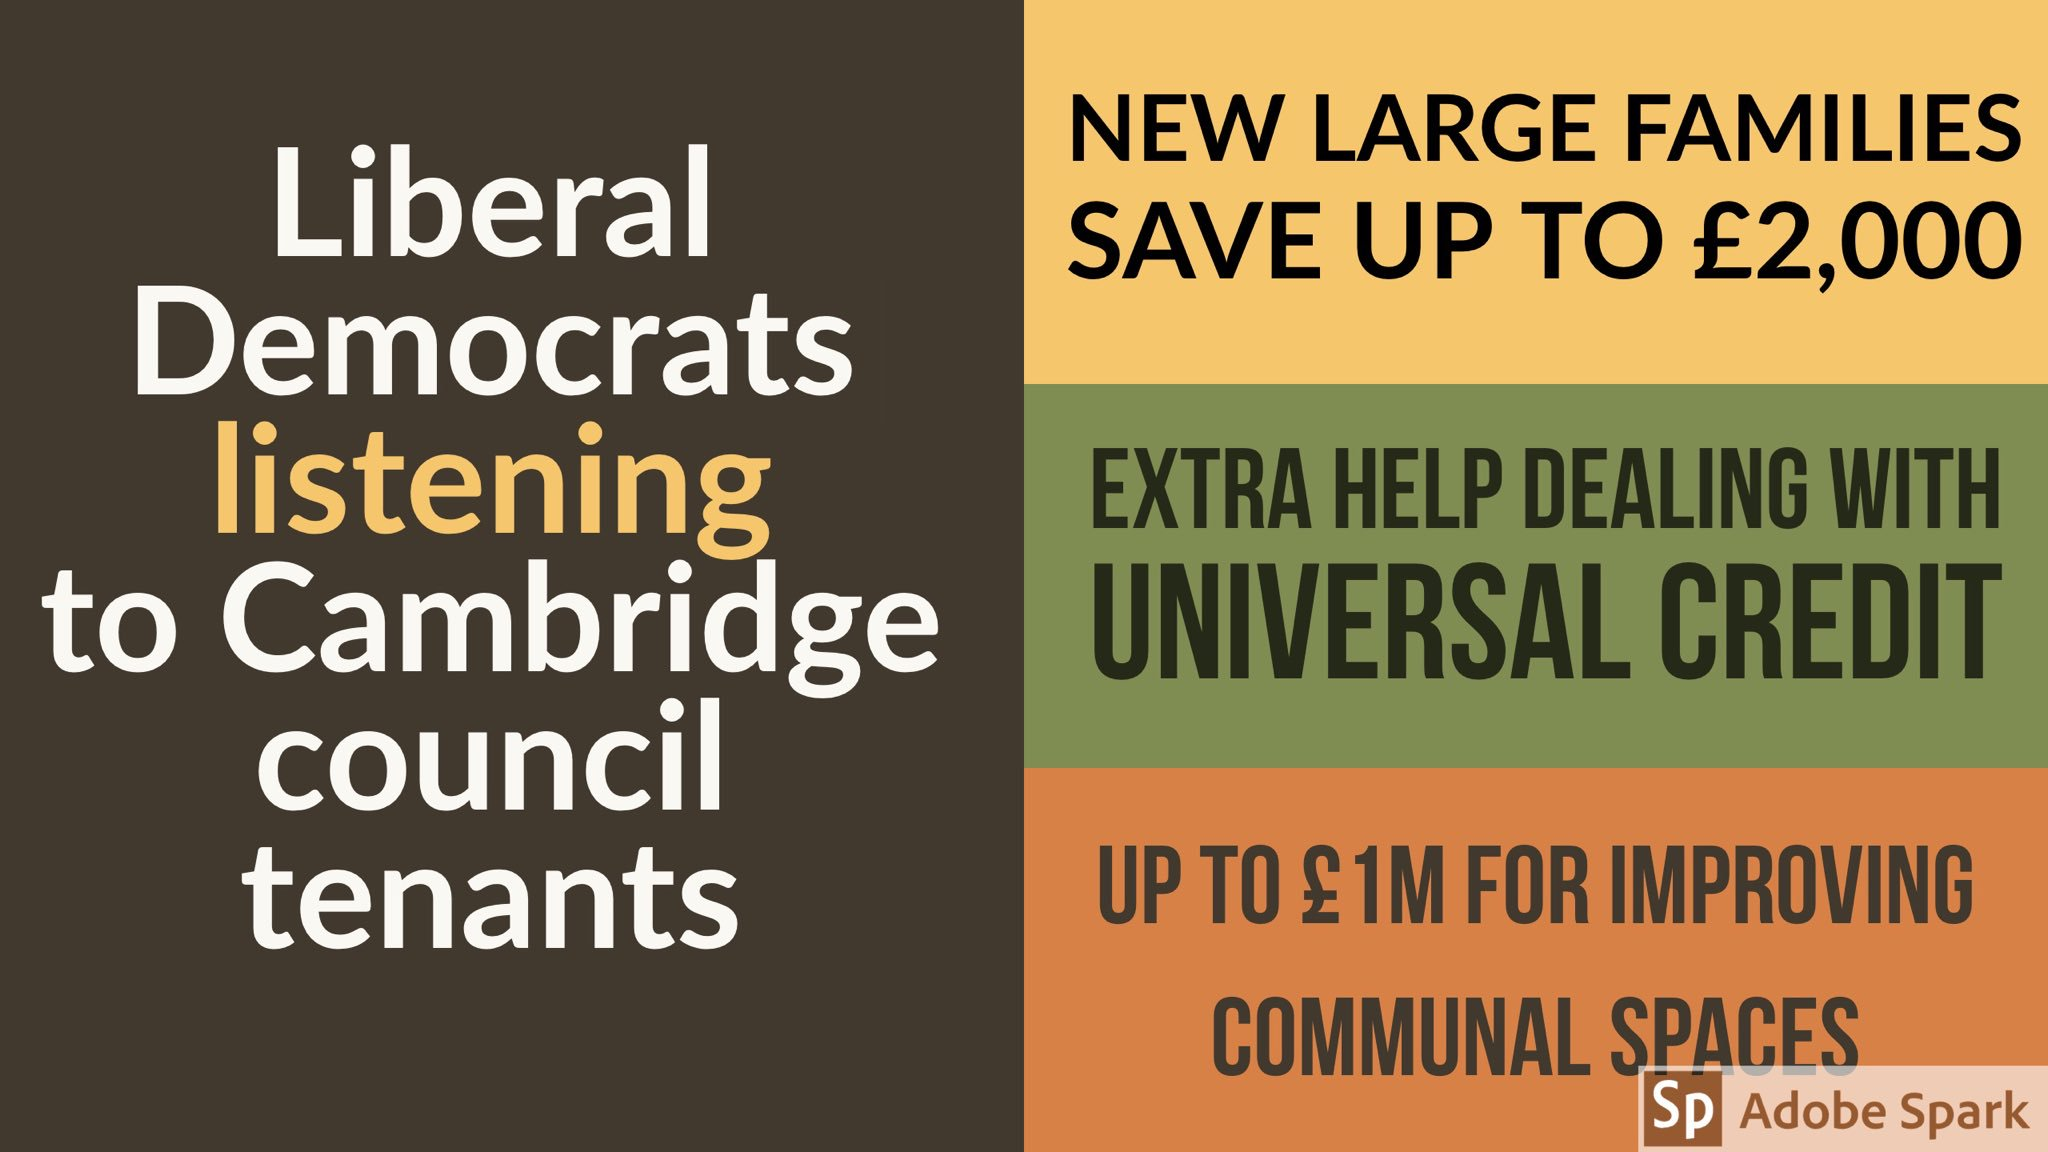 Liberal Democrats listening to Cambridge Council Tenants